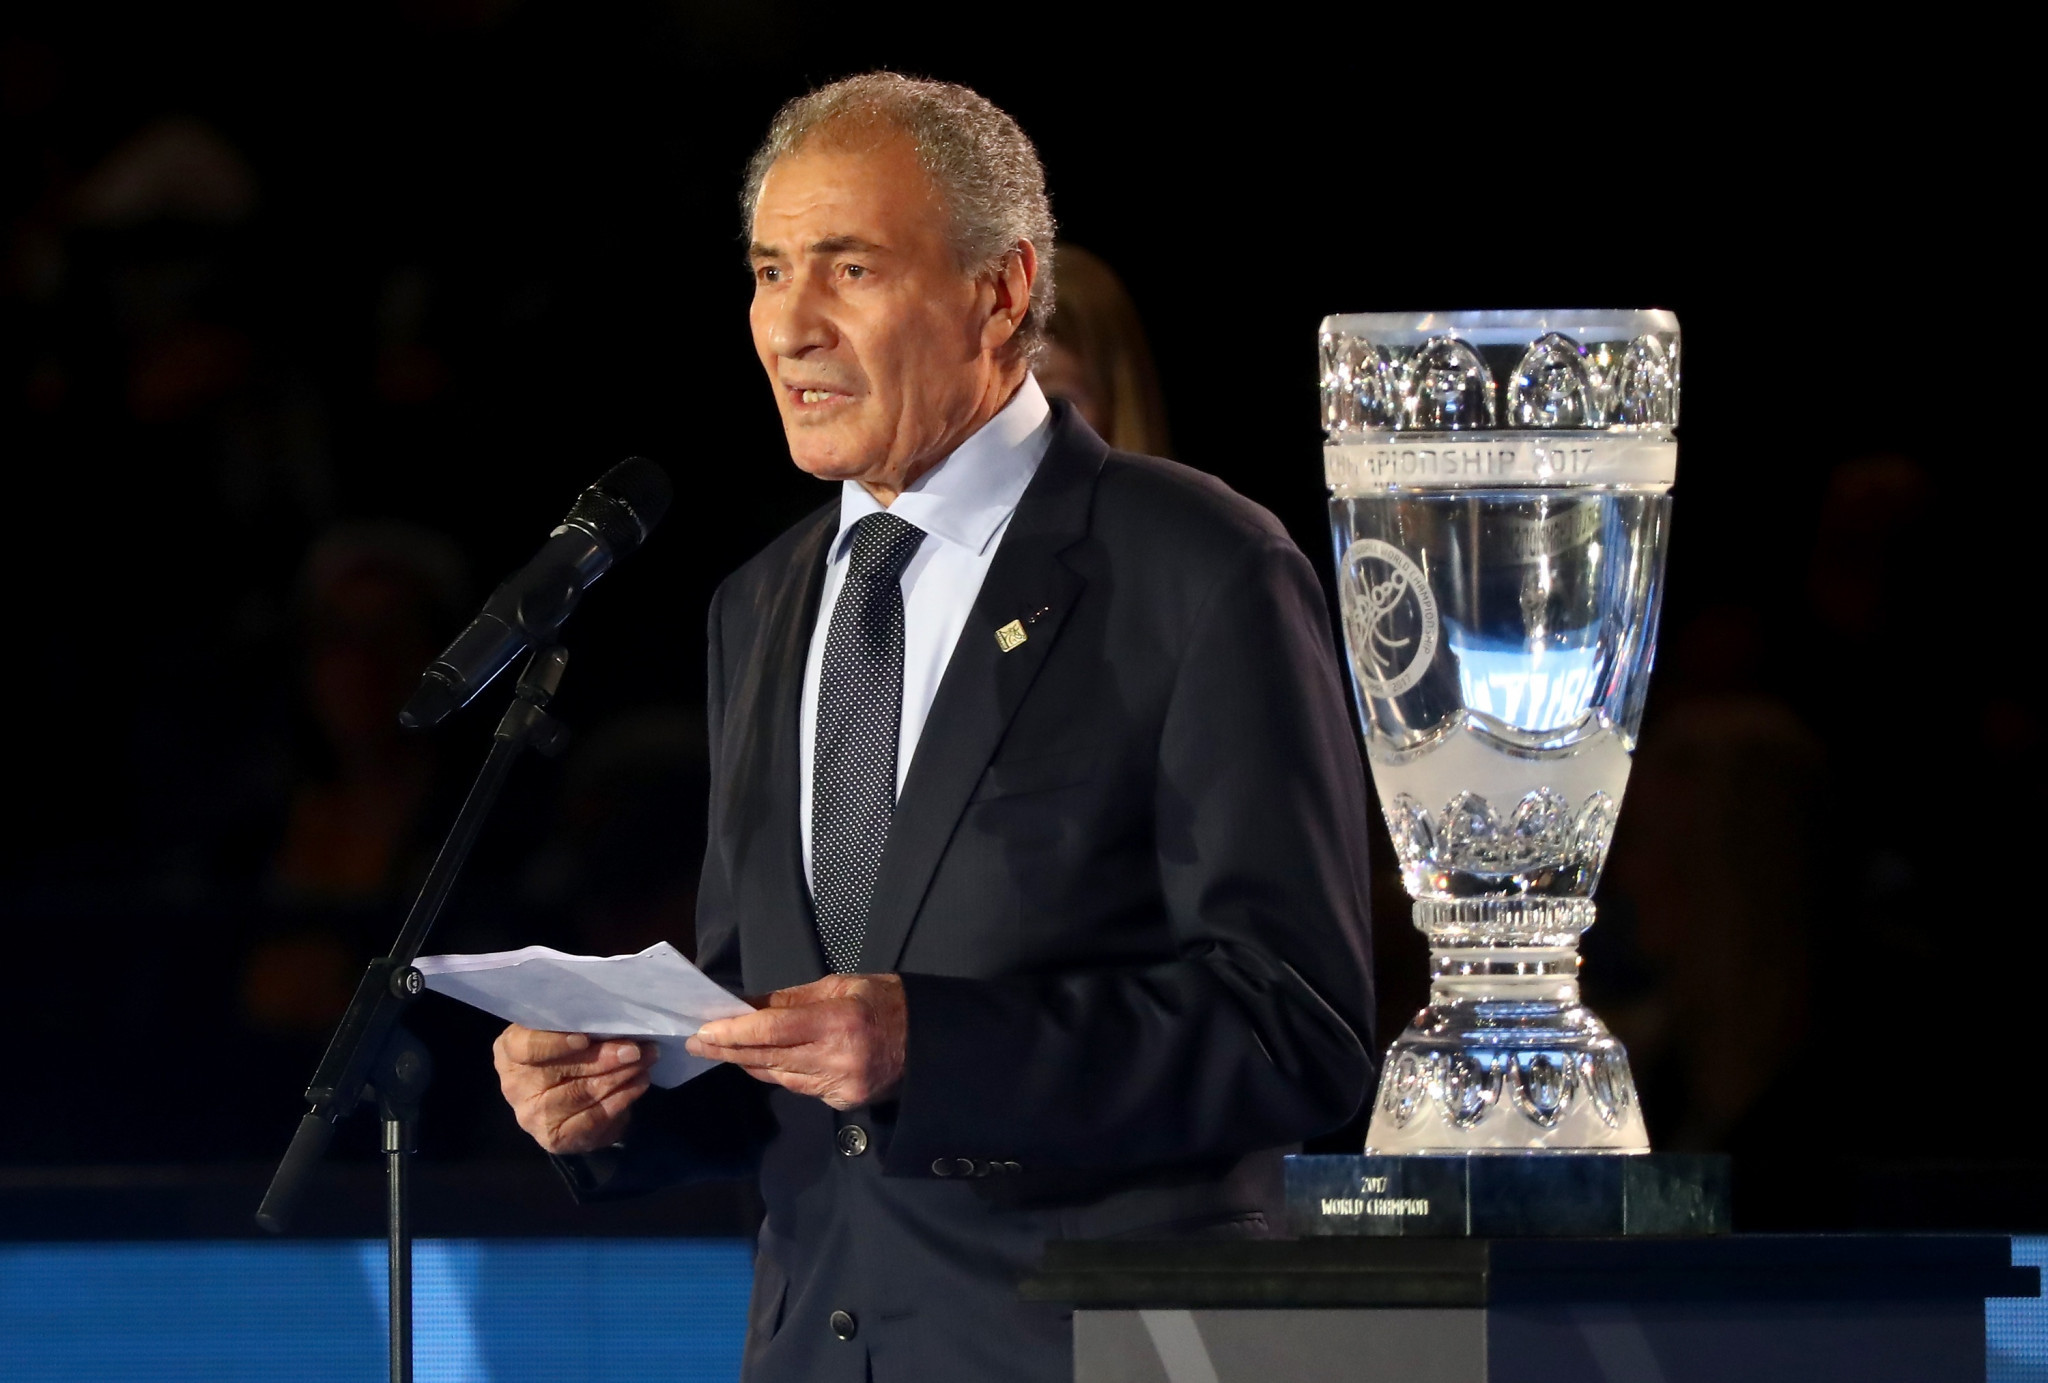 Hassan Moustafa was re-elected unopposed as President of the International Handball Federation in November, but controversy surrounded the vote ©Getty Images